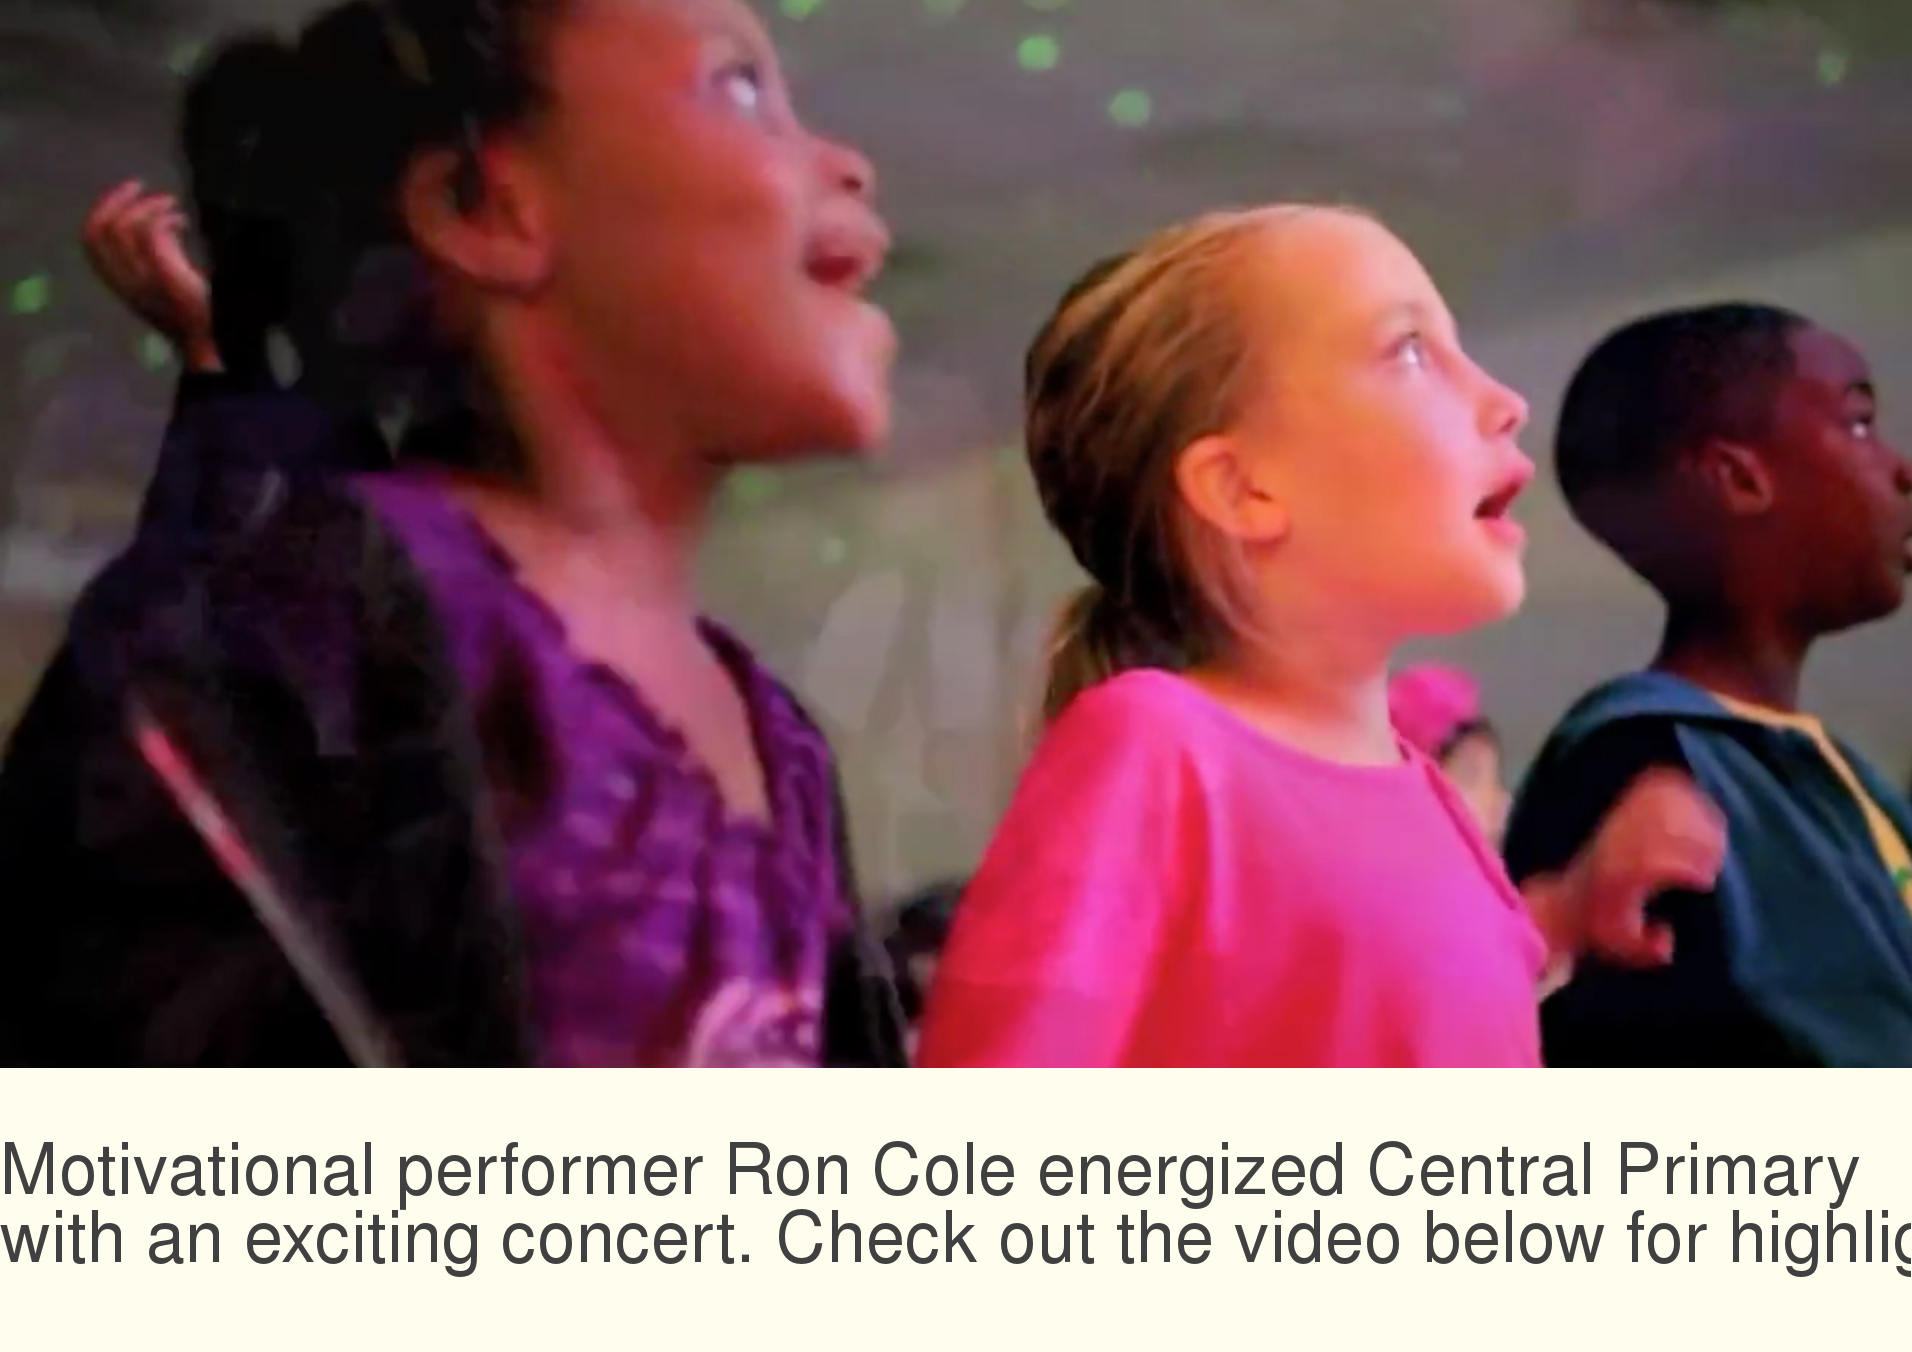 Ron Cole energizes Central Primary